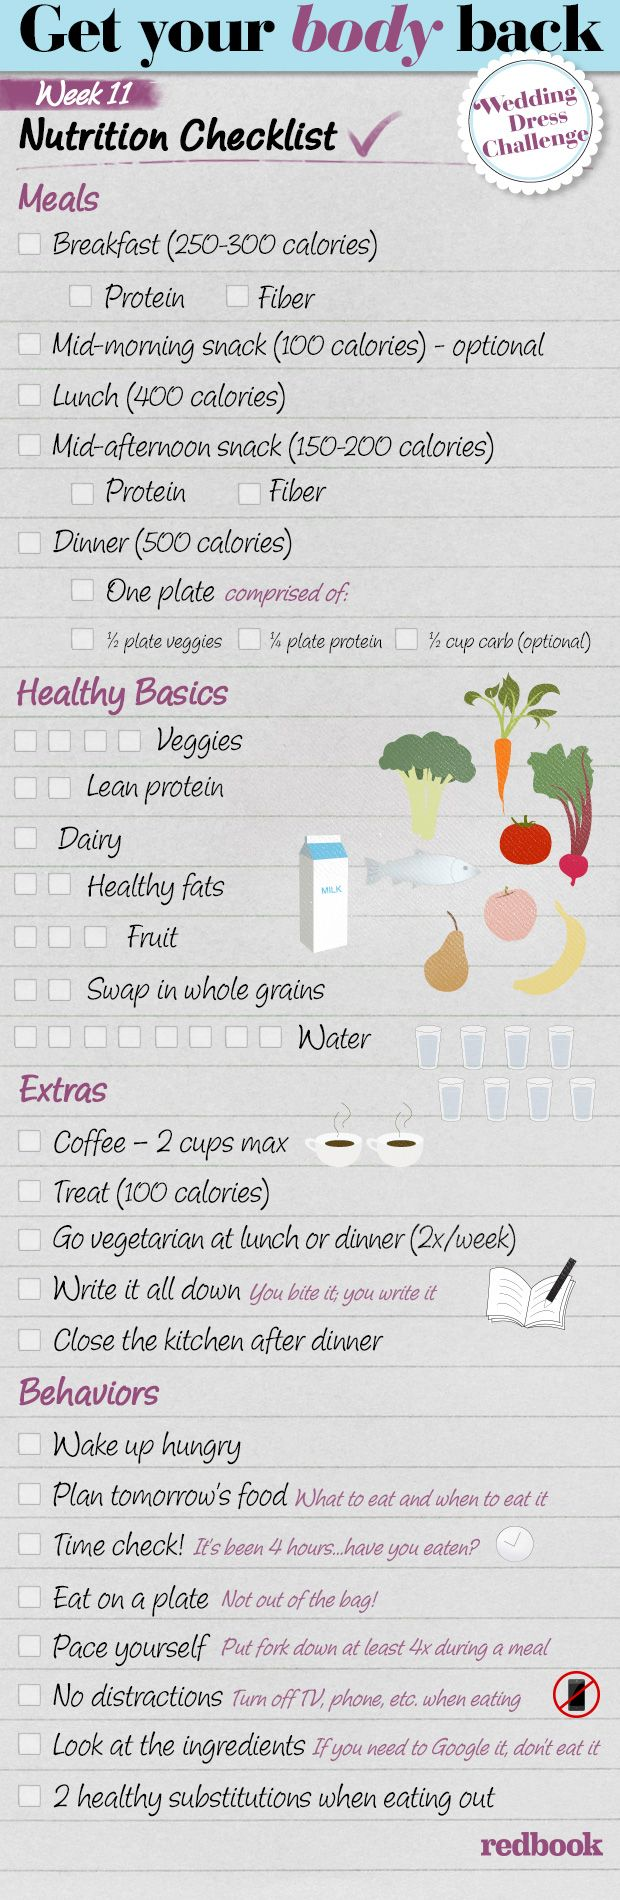 Eating Guide - Good Reminder but I blow the 2 cups of coffee rule out of the water.